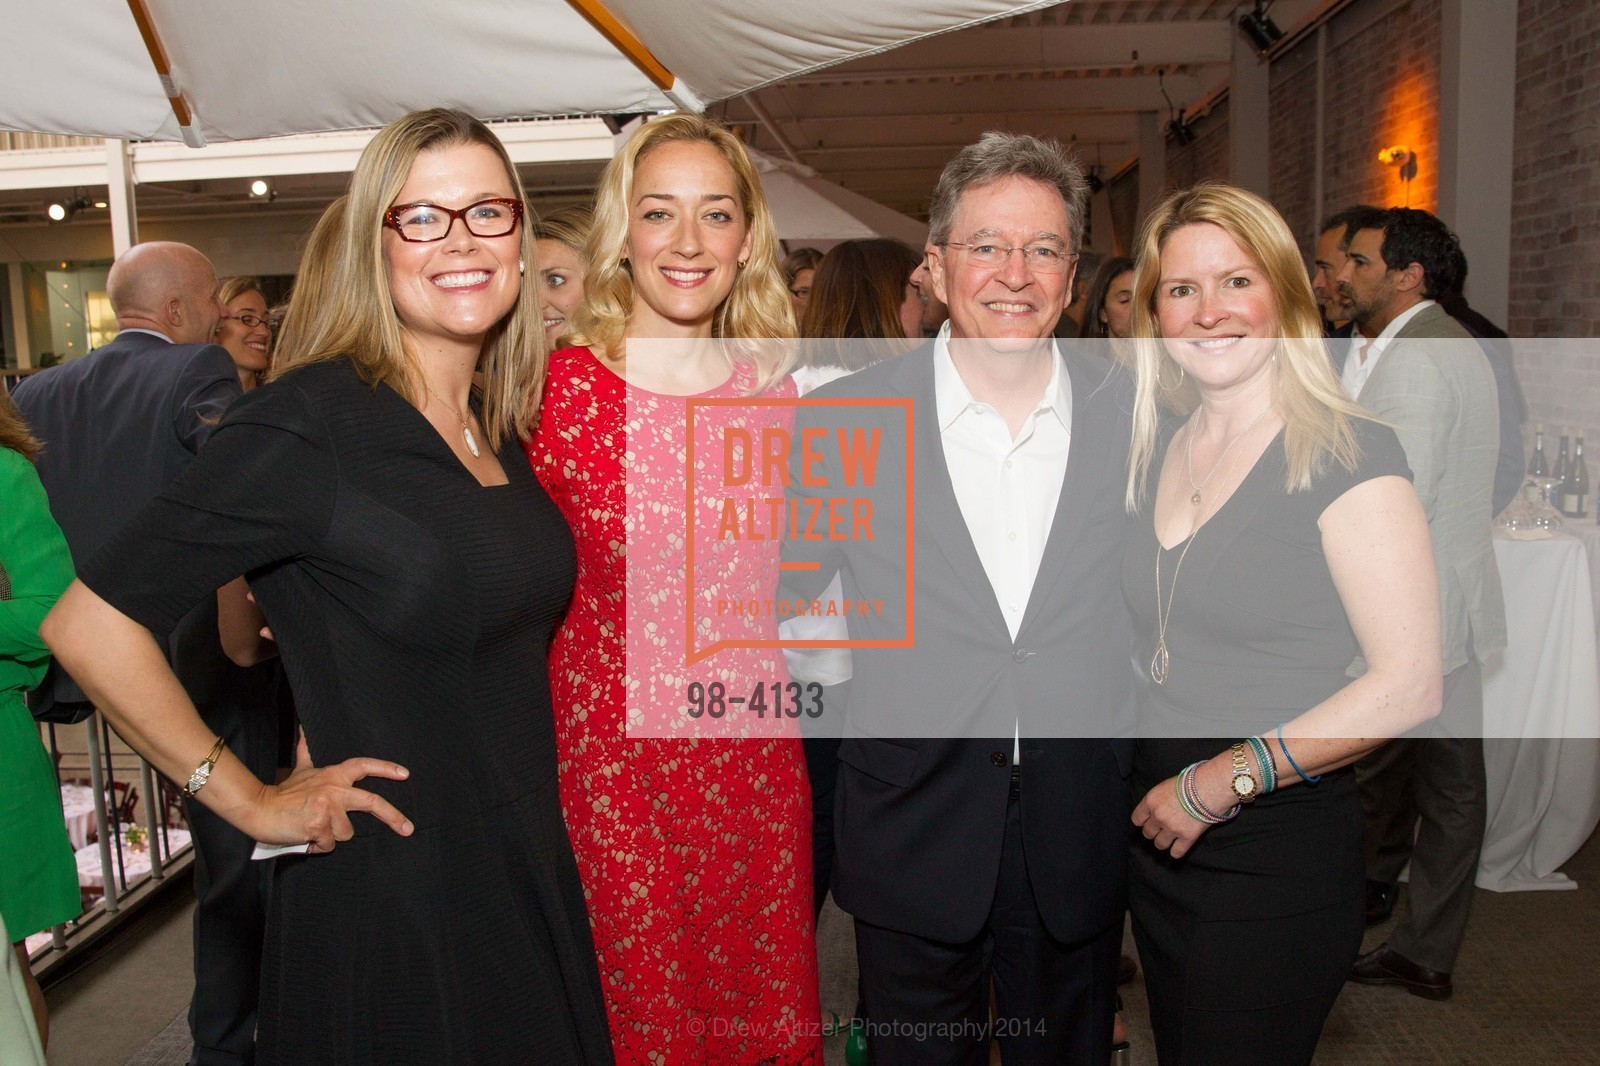 Heather White, Chris Connor, Ken Cook, Gabrielle Hull, Photo #98-4133